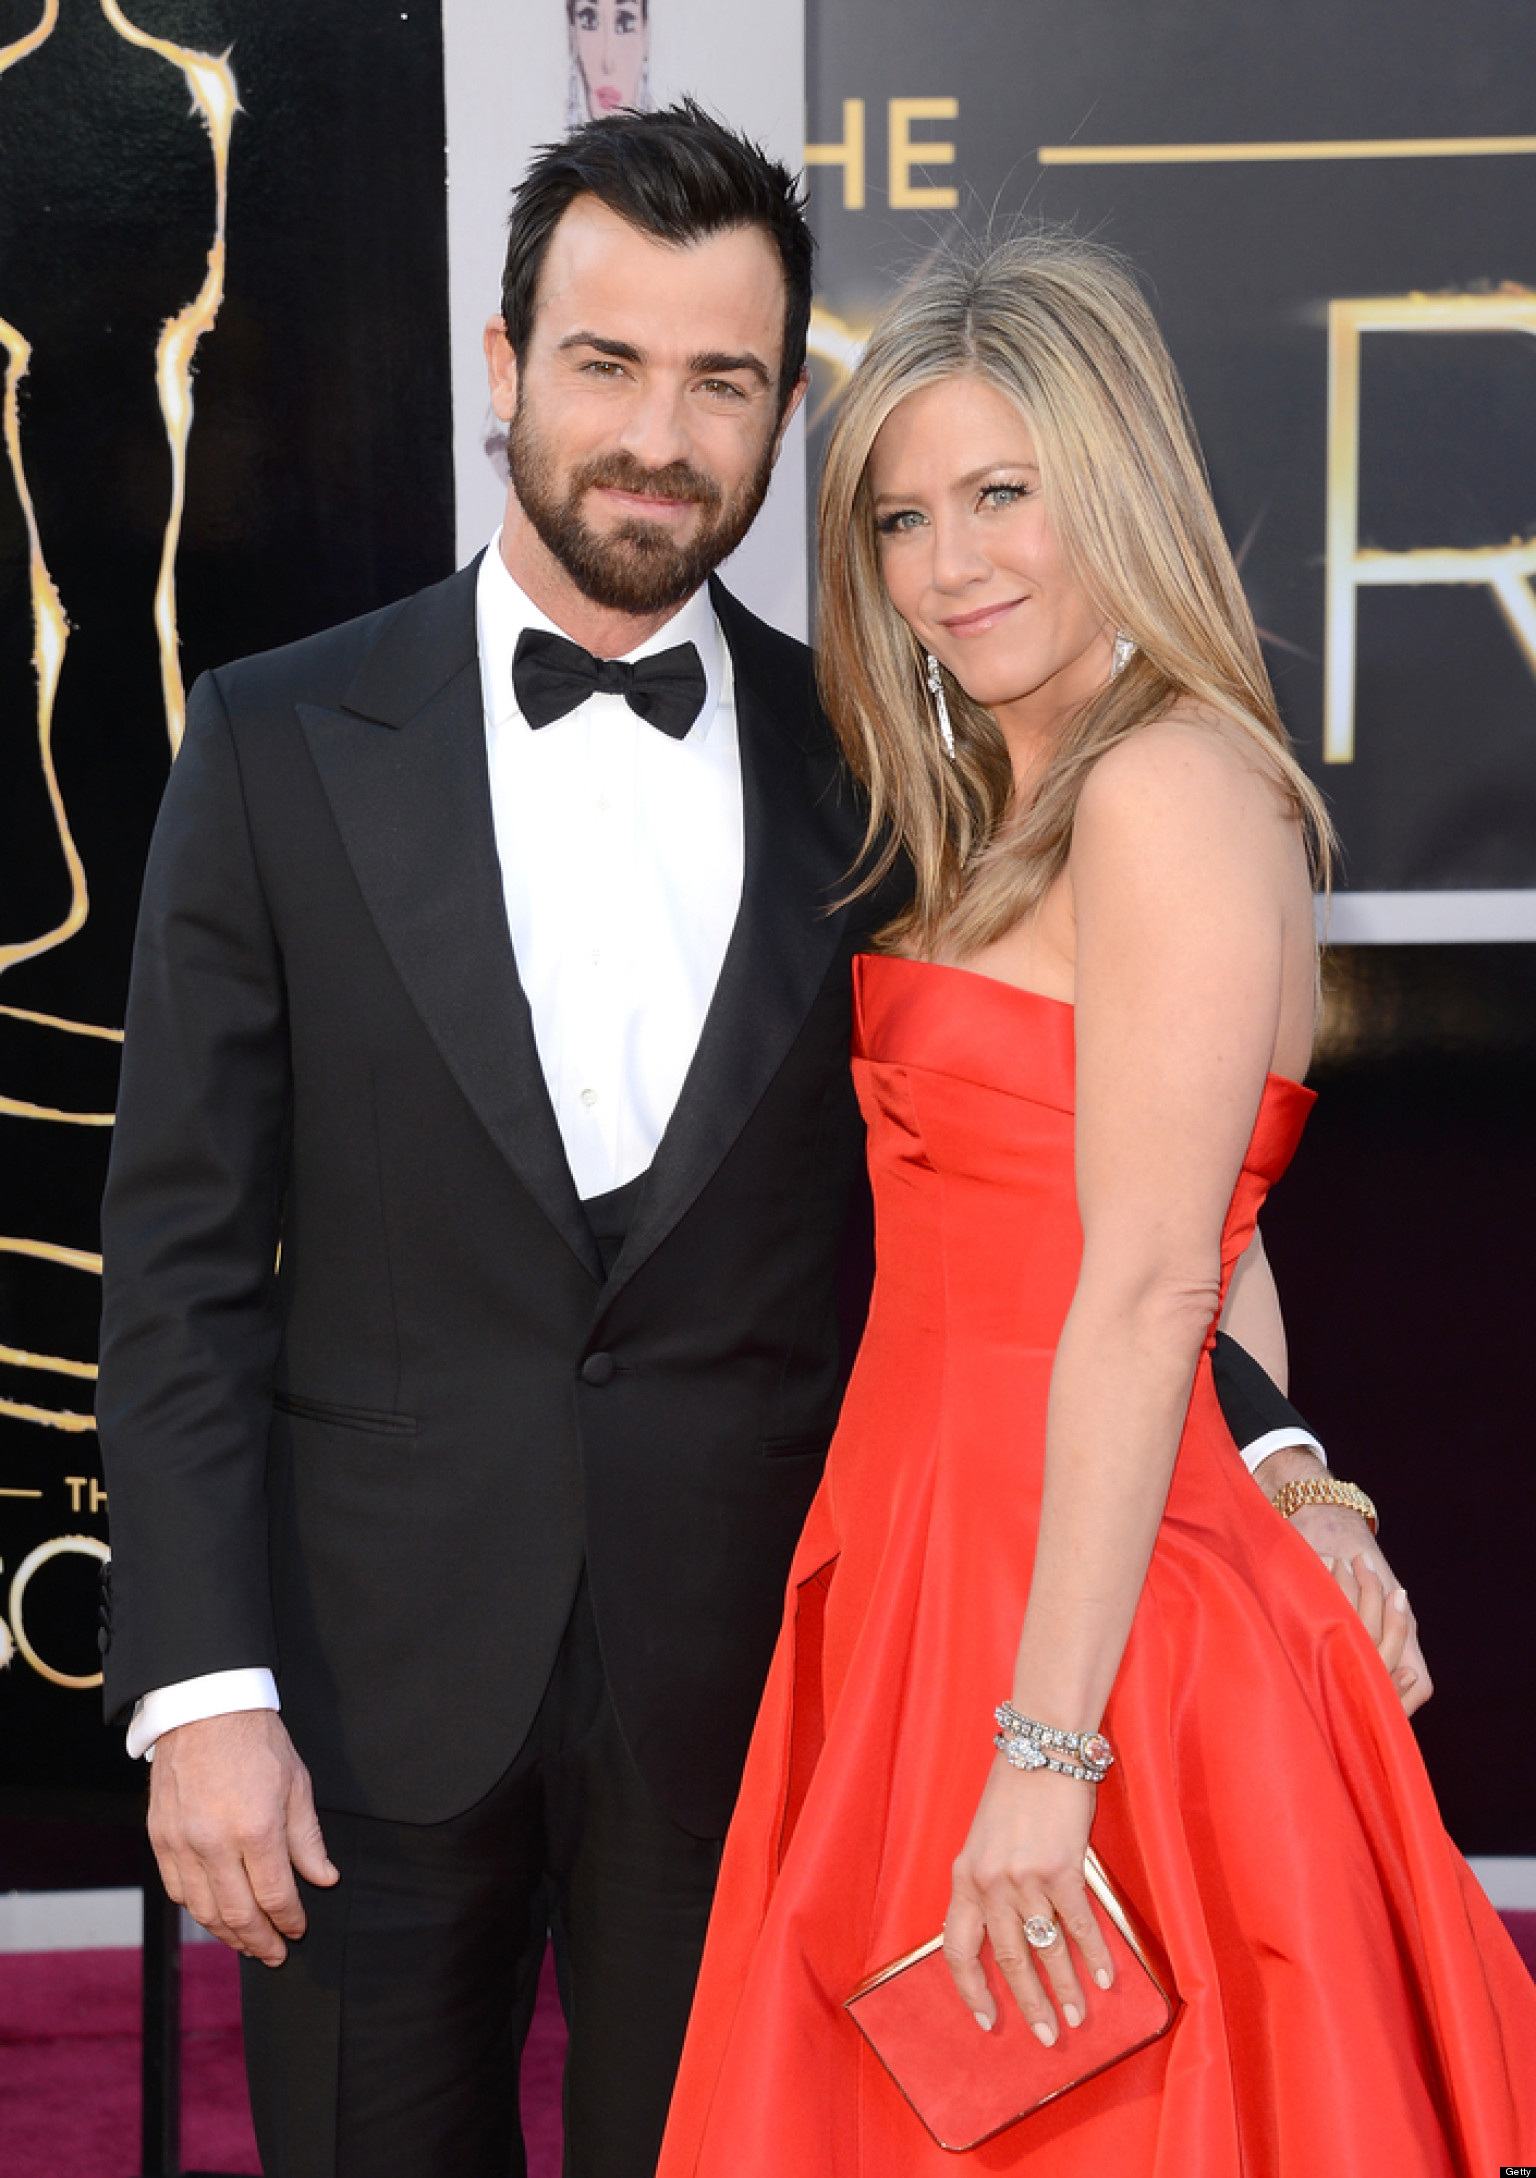 Jennifer Aniston S Wedding On Hold Nuptials With Justin Theroux Allegedly Postponed Report Huffpost